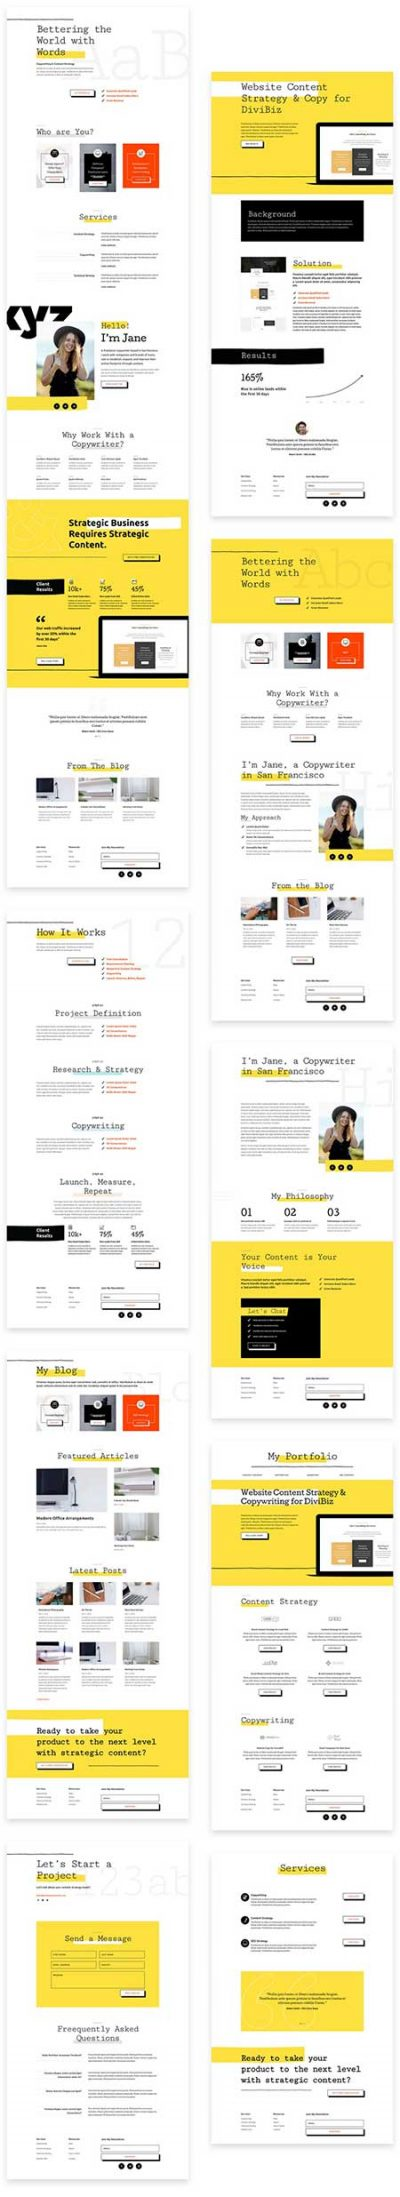 Divi freelance writer layout